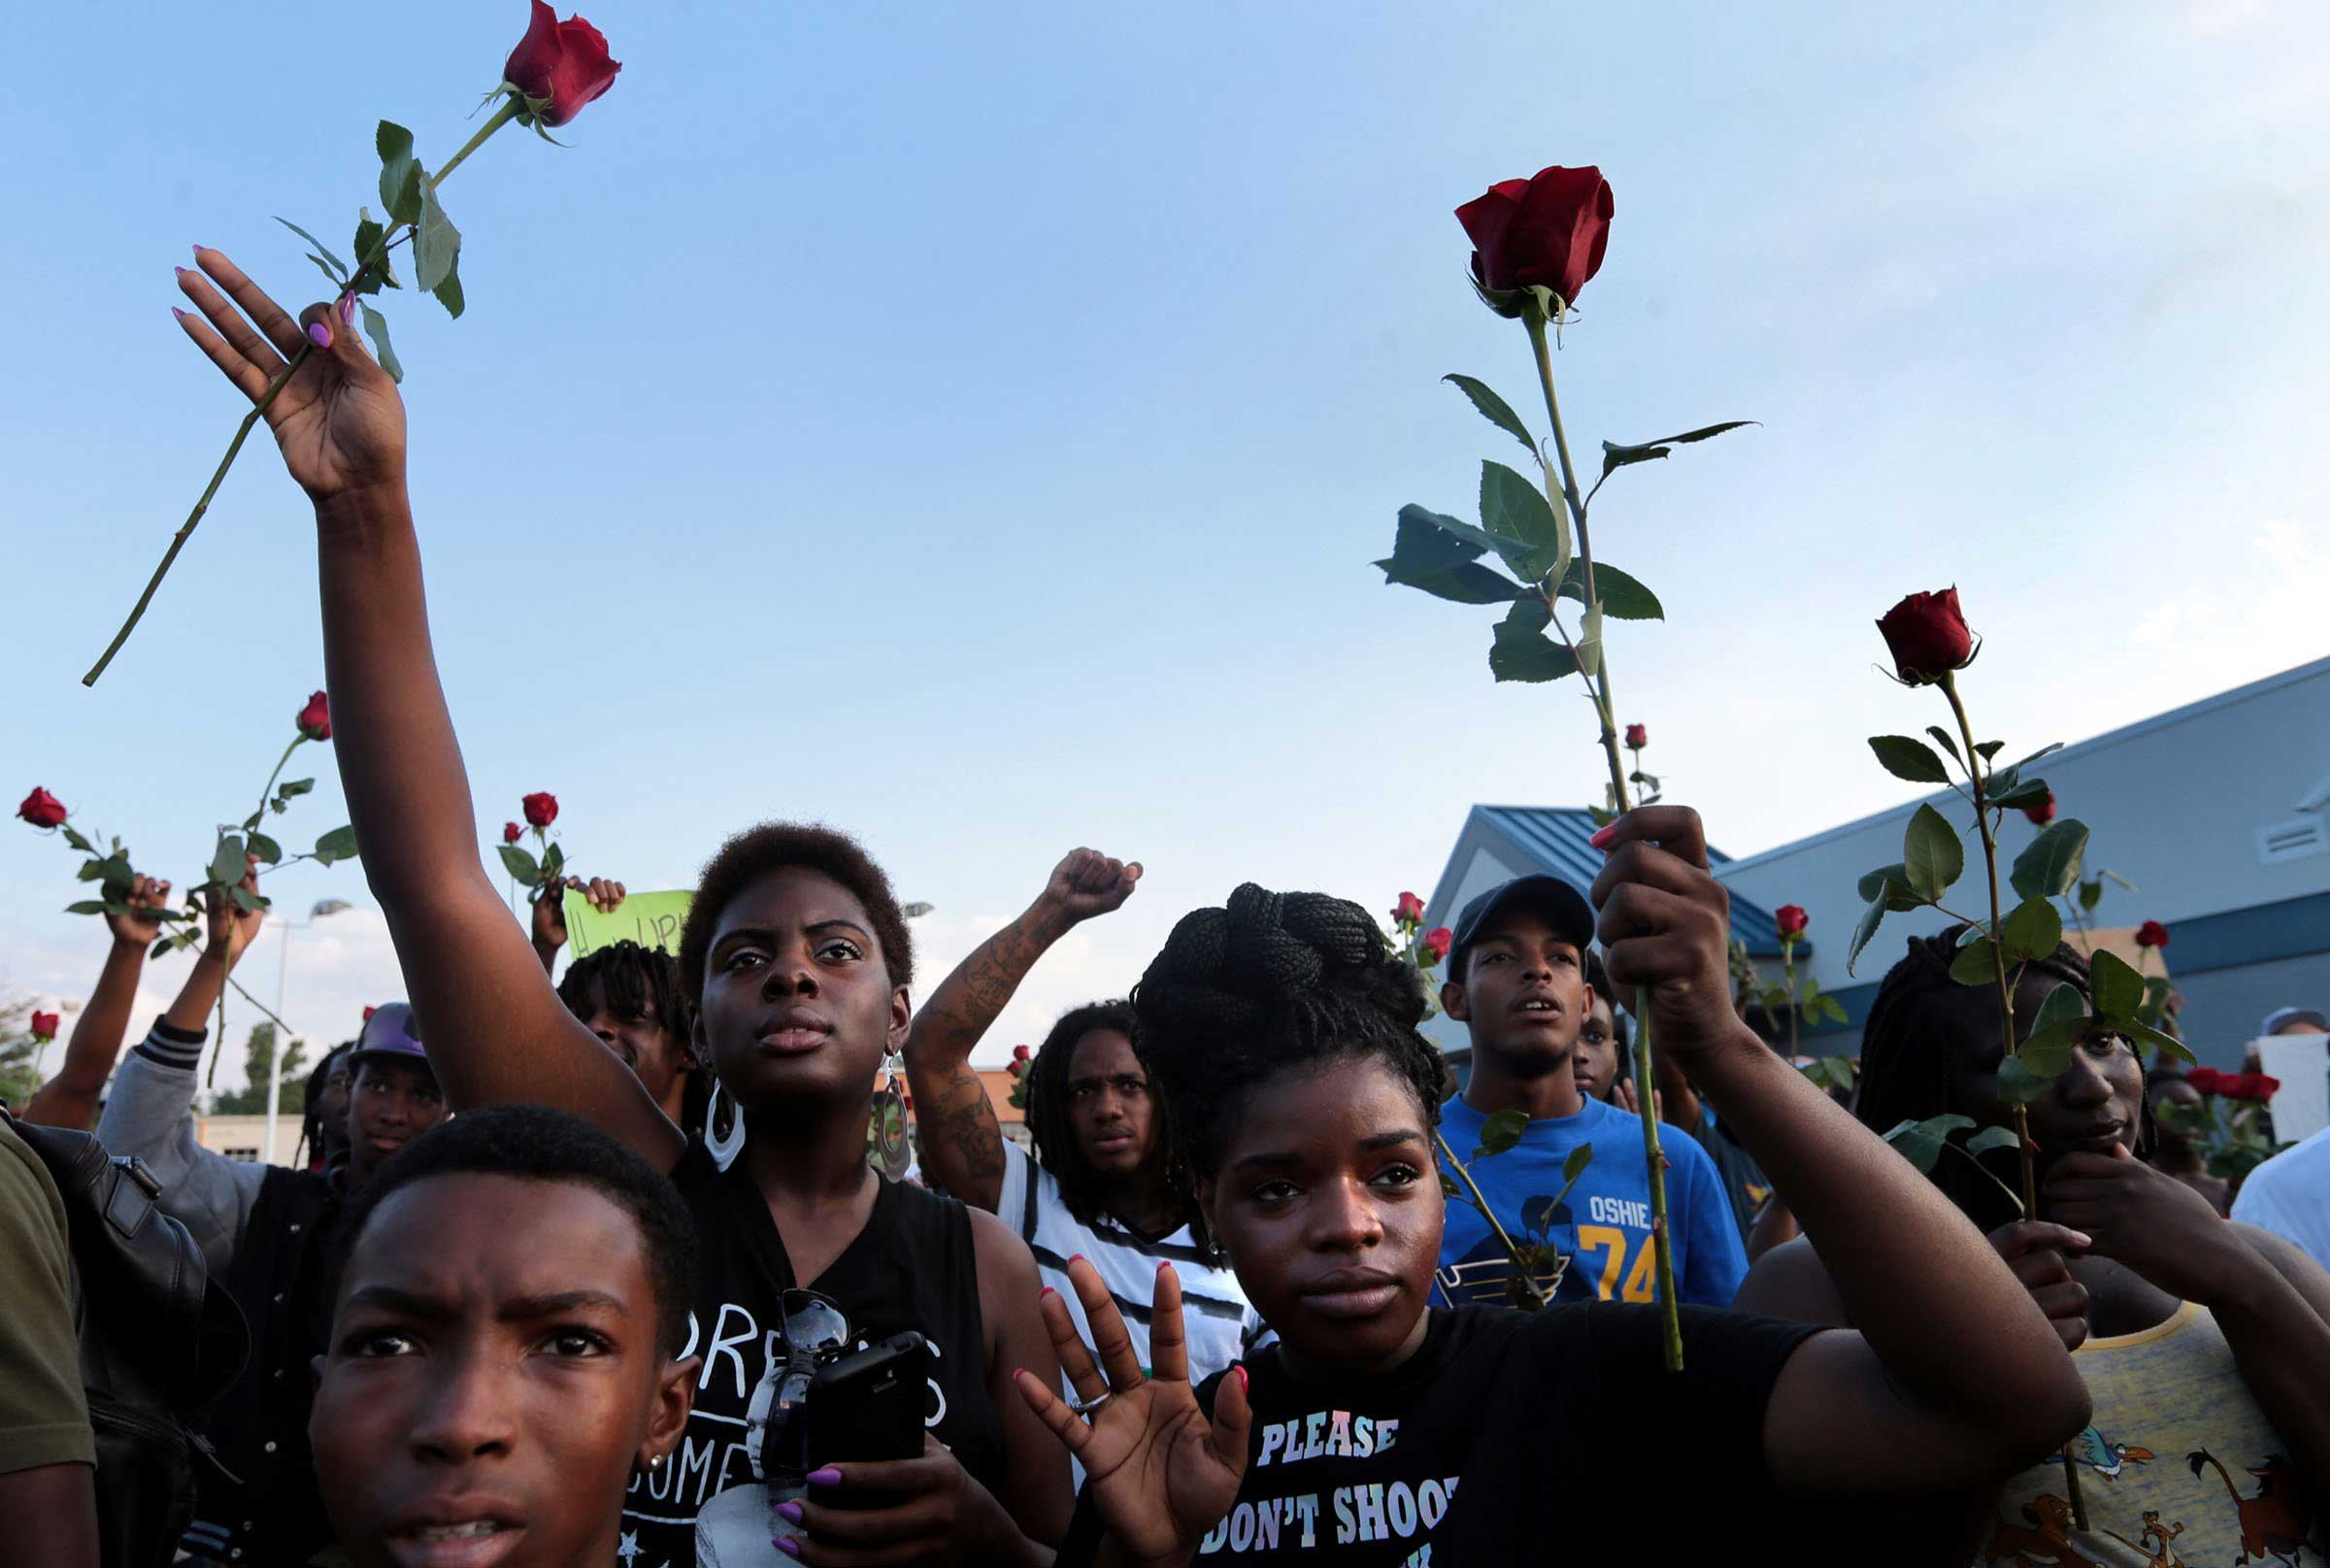 Aug. 18, 2014.  I am out here for justice; not just for Michael Brown, but for all of us,  said Krystal Harbor, 23, (third from left) who brought her brother Ray Clark,13, and friend Shylan Times to the protest Monday, Aug. 18, 2014, in Ferguson. Various volunteers passed out roses to those who marched on the sidewalk according to new guidelines set by police.